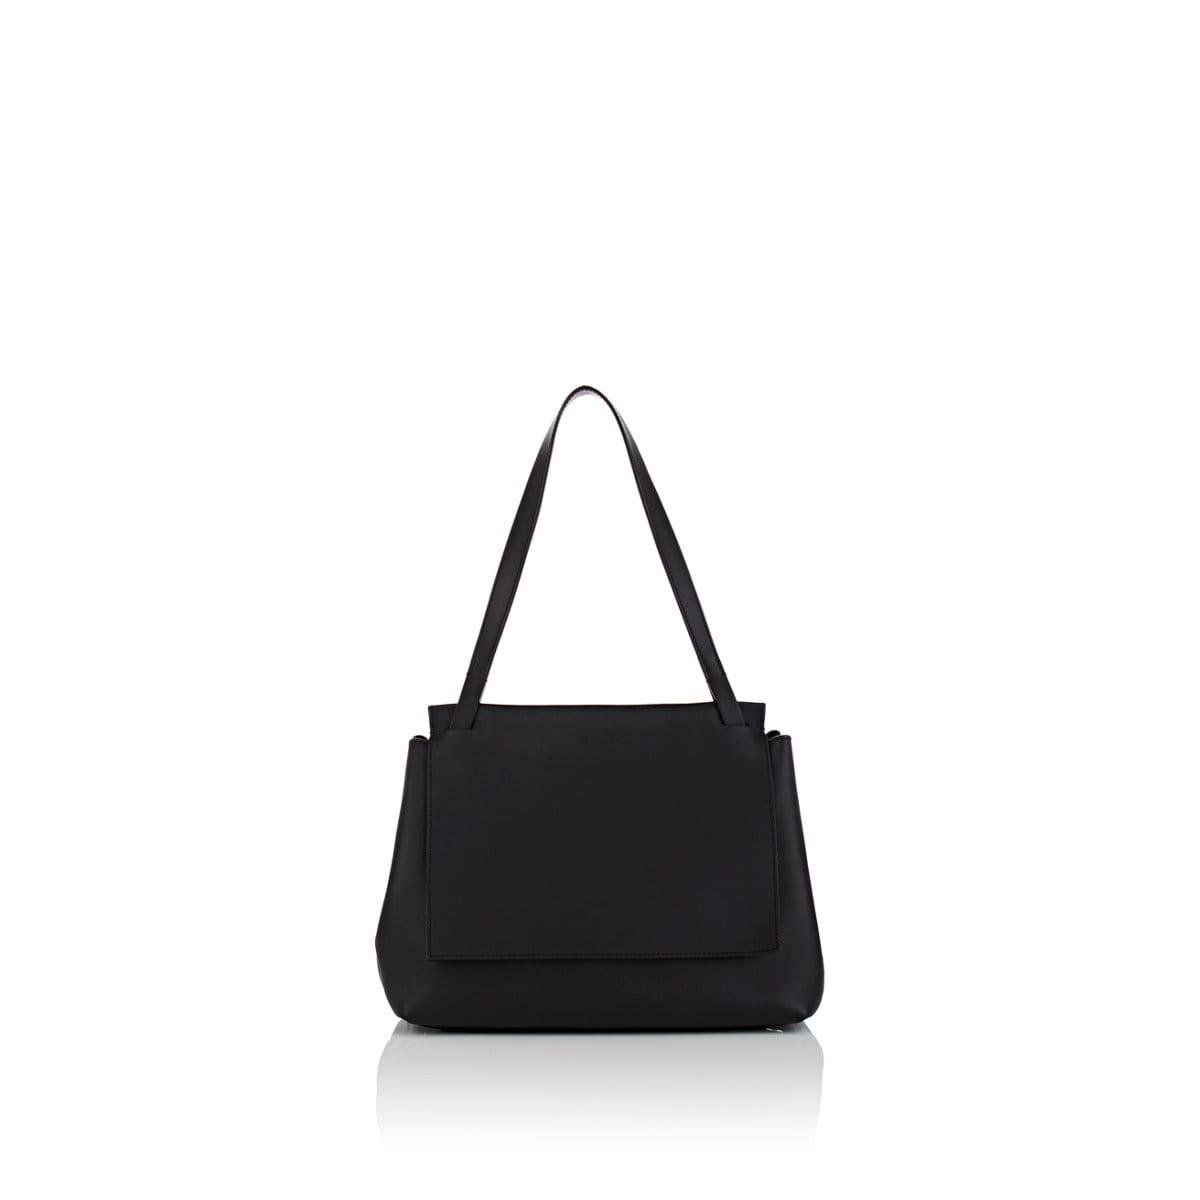 6e200dff1c5c Lyst - The Row Sidekick Two Leather Shoulder Bag in Black - Save 11%